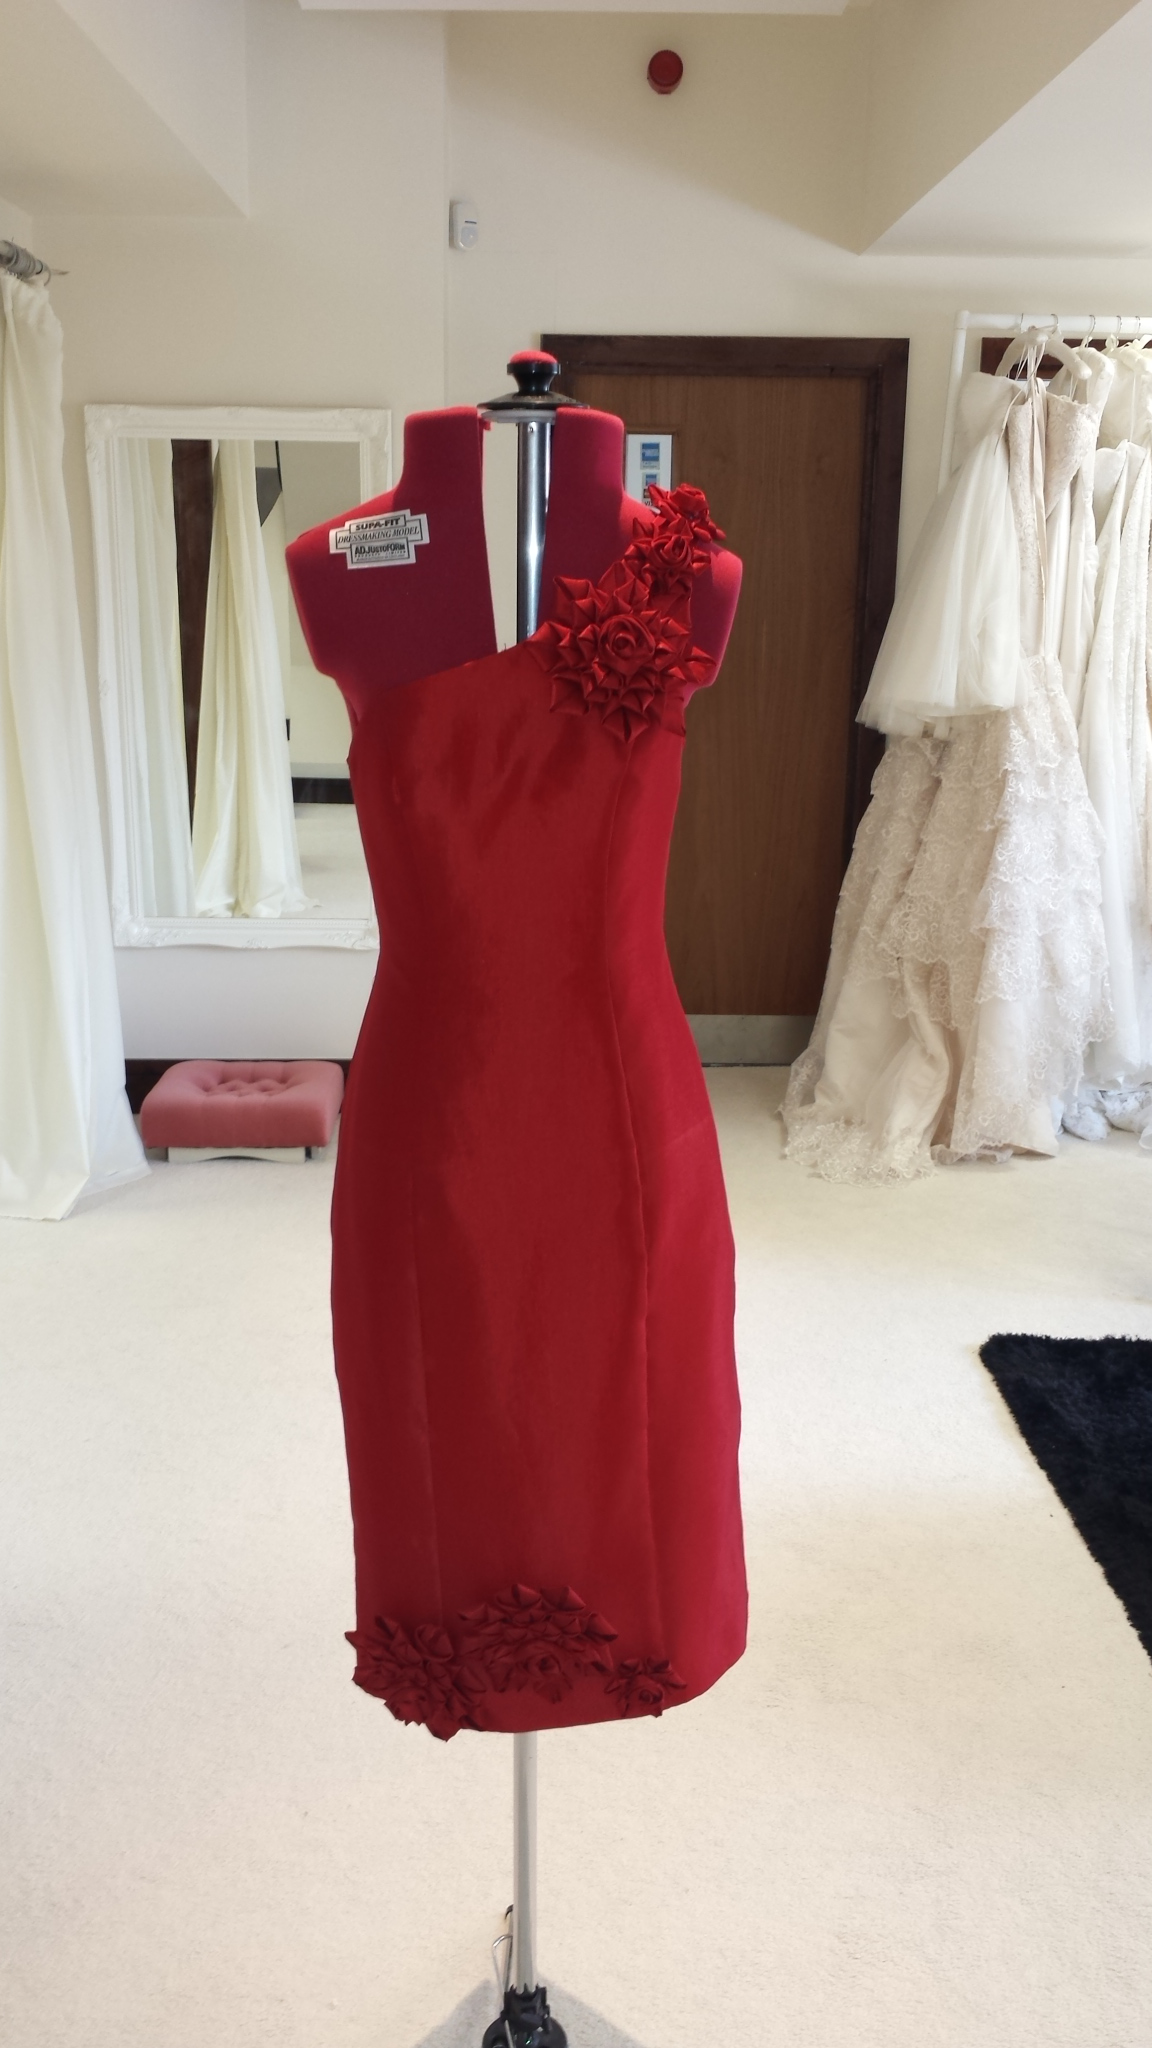 Red one Shoulder Cocktail Dress, Red one shoulder prom dress, red one shoulder